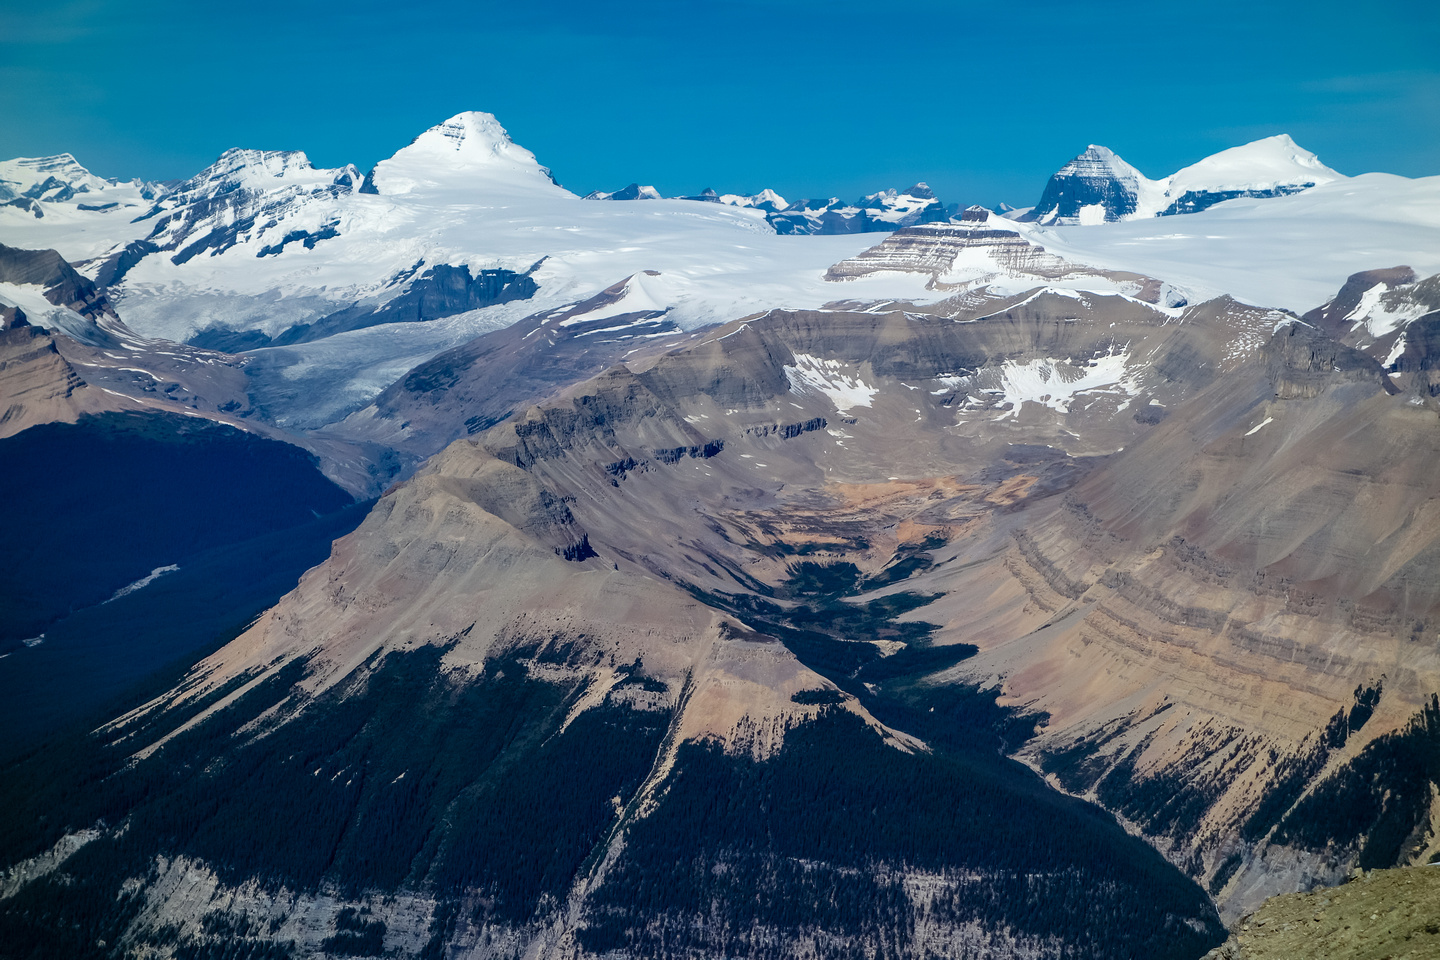 Clemenceau, King Edward, the mighty Mount Columbia (L), tiny Castleguard in the foreground and the always impressive South and North Twin in the background.